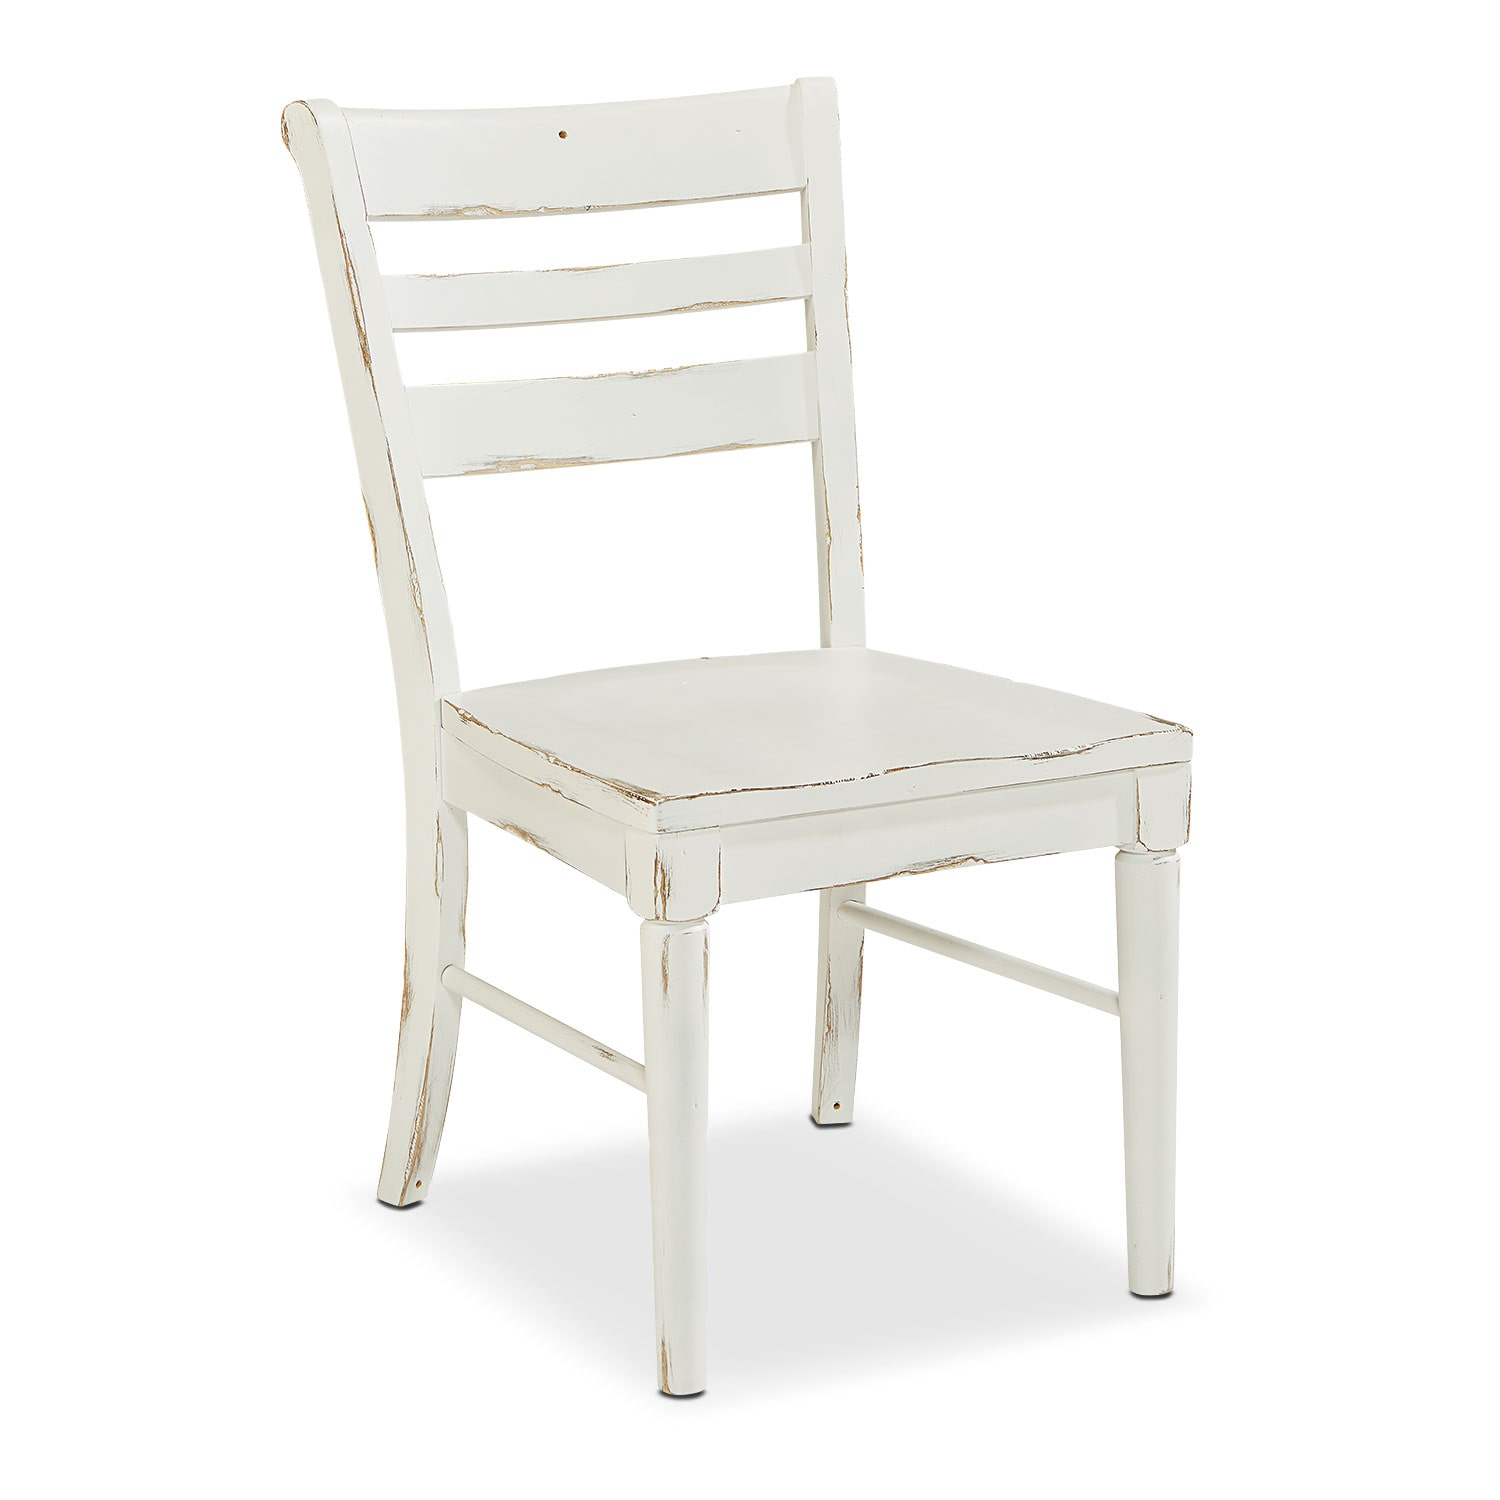 Kempton Slat Back Chair - White